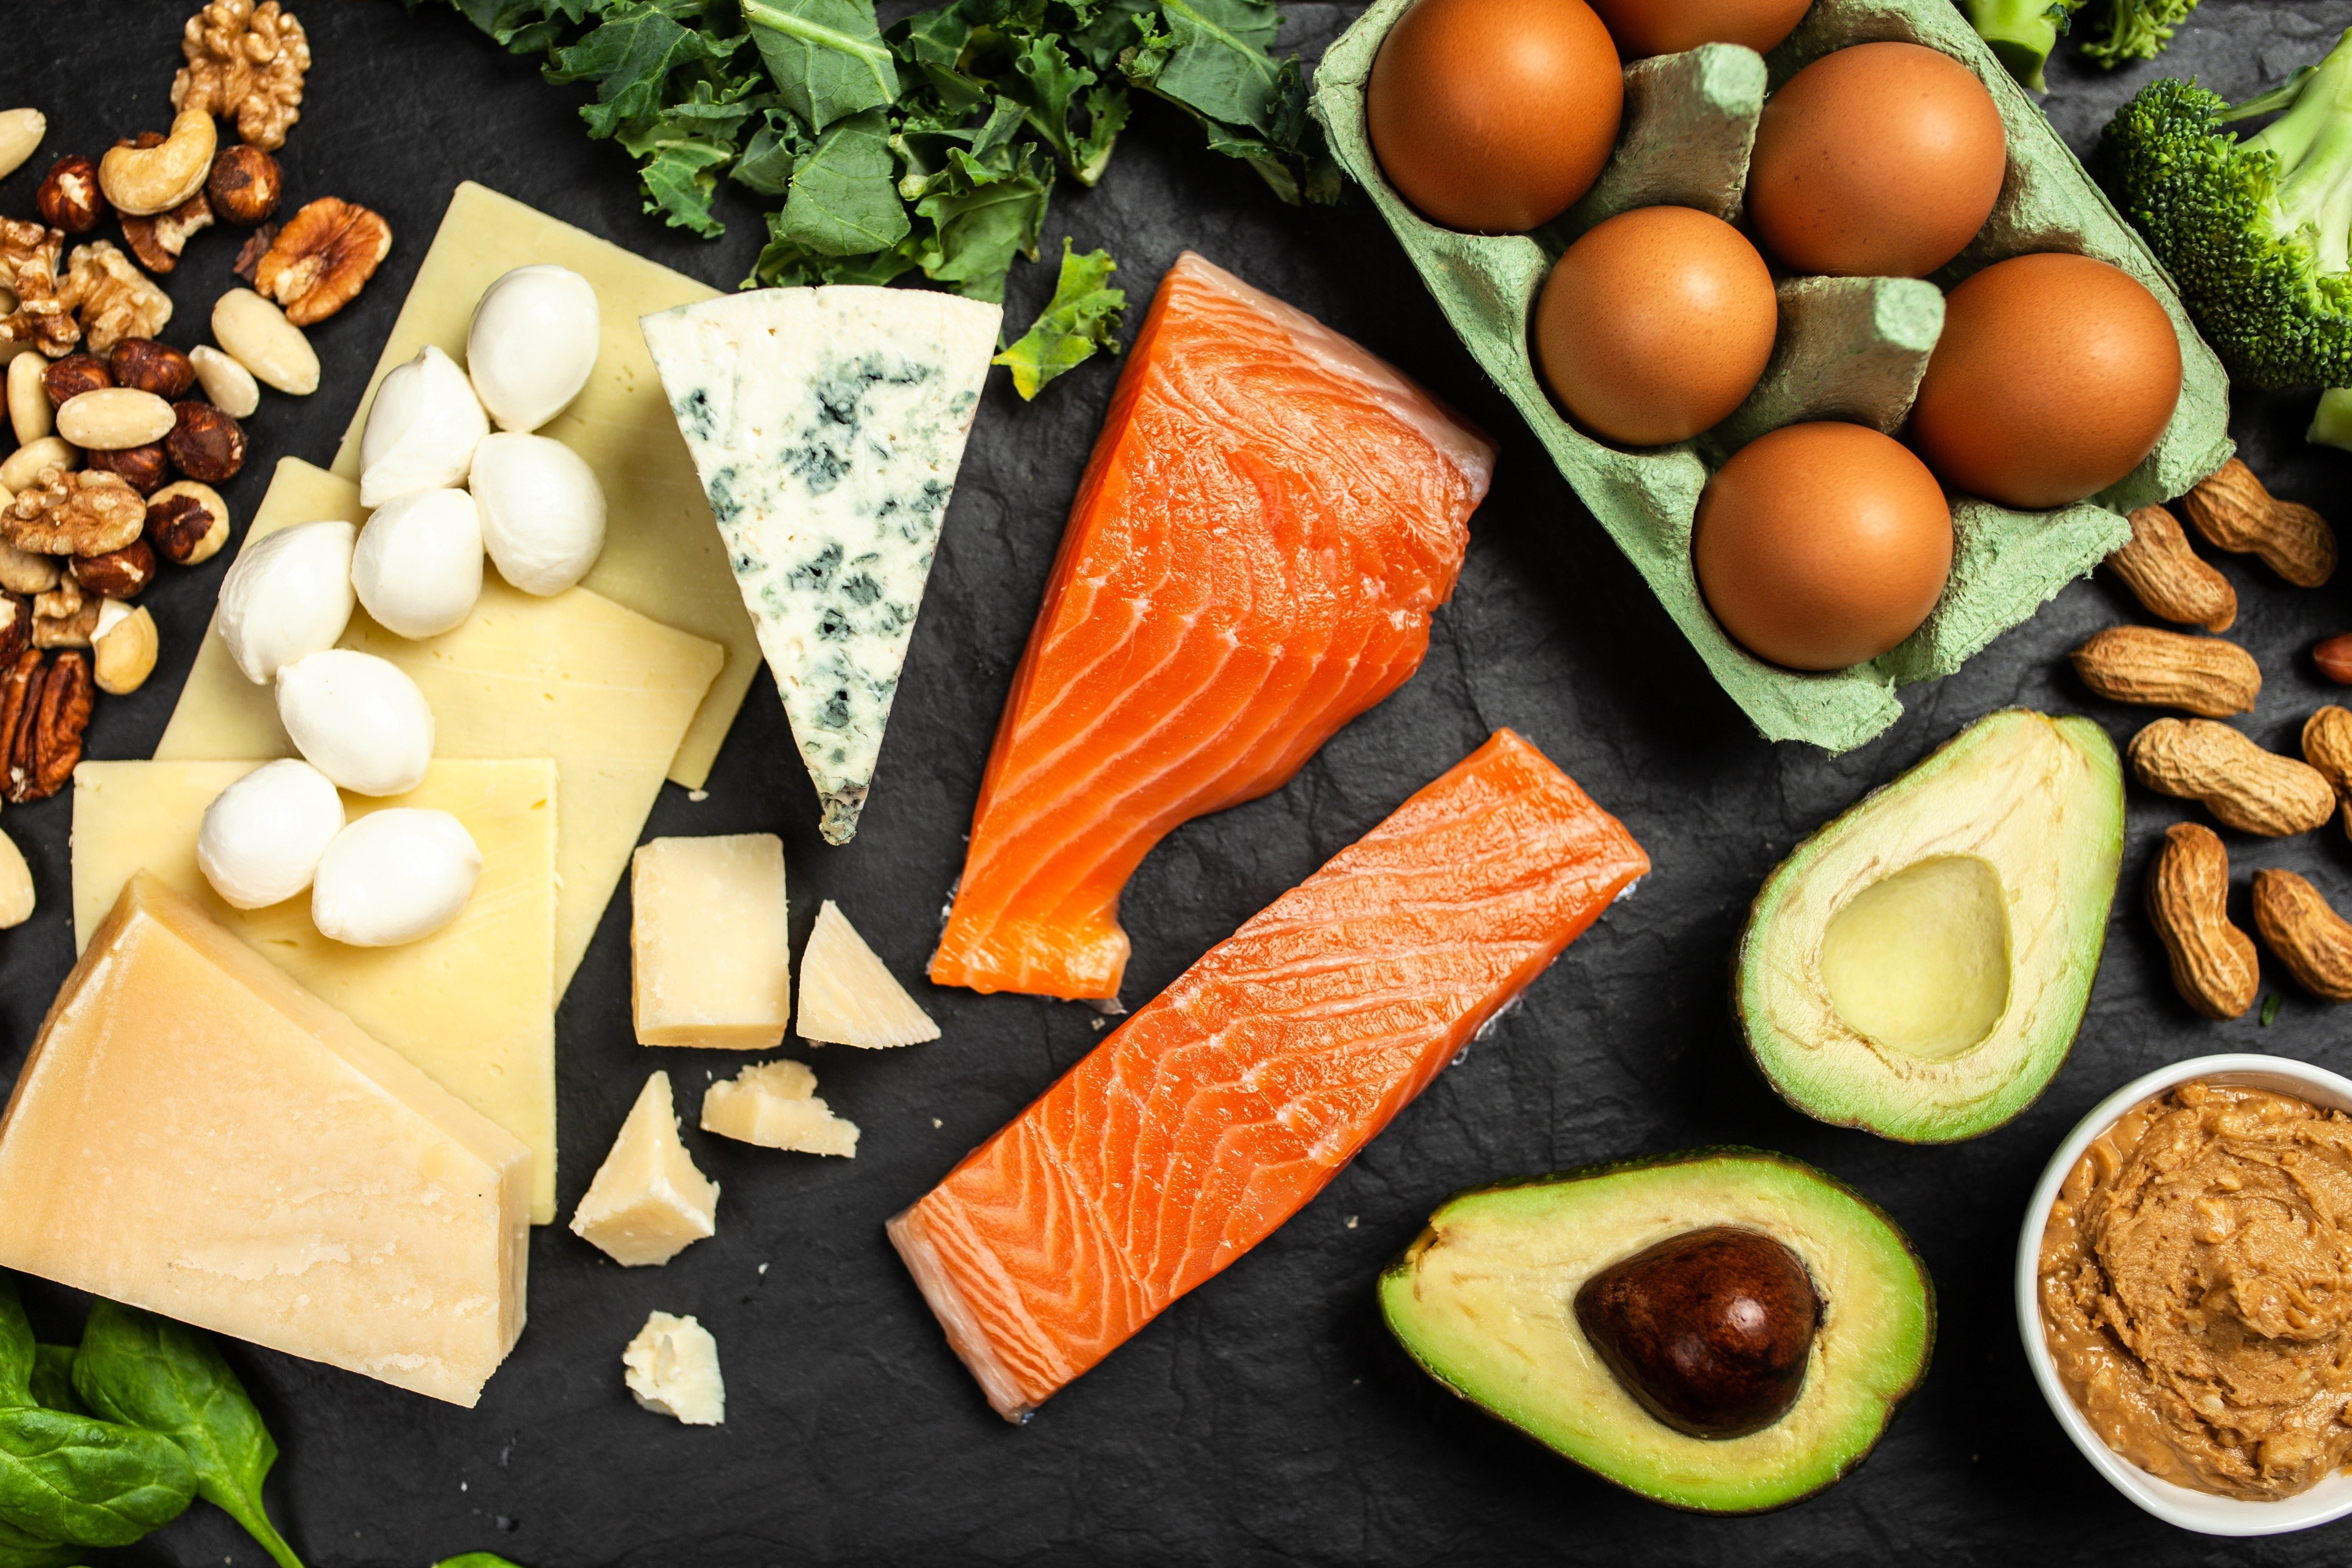 Keto diet food ingredients